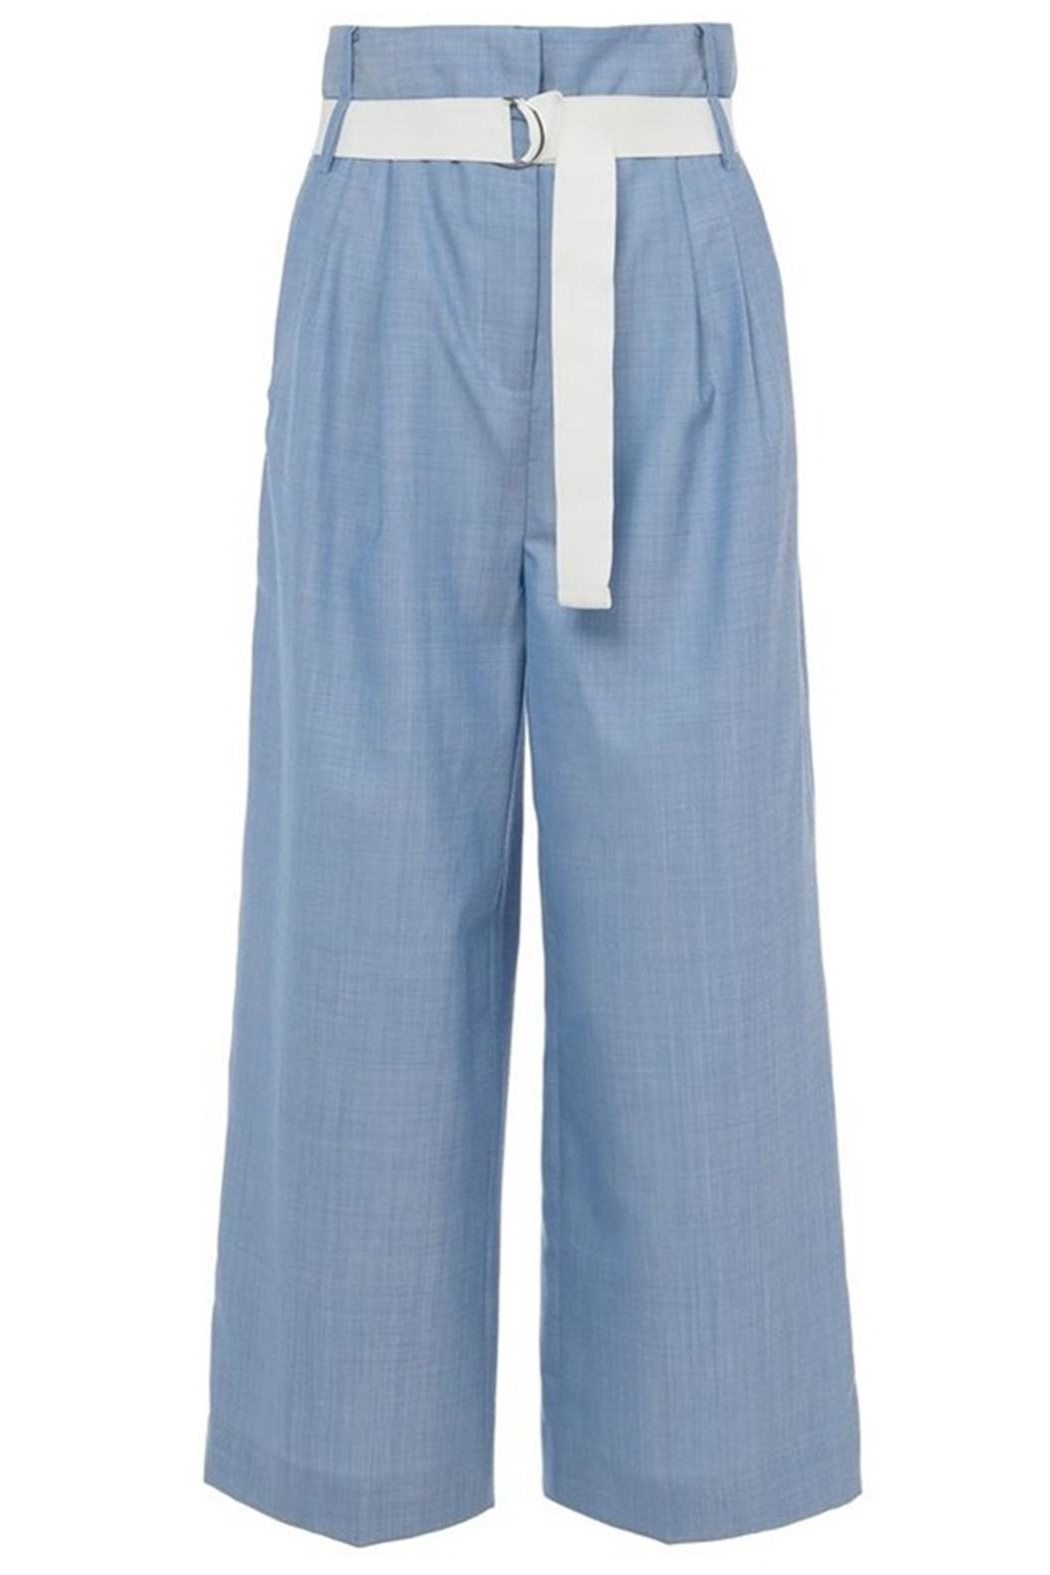 Tibi Serge Suiting Pant - Back Cropped Image